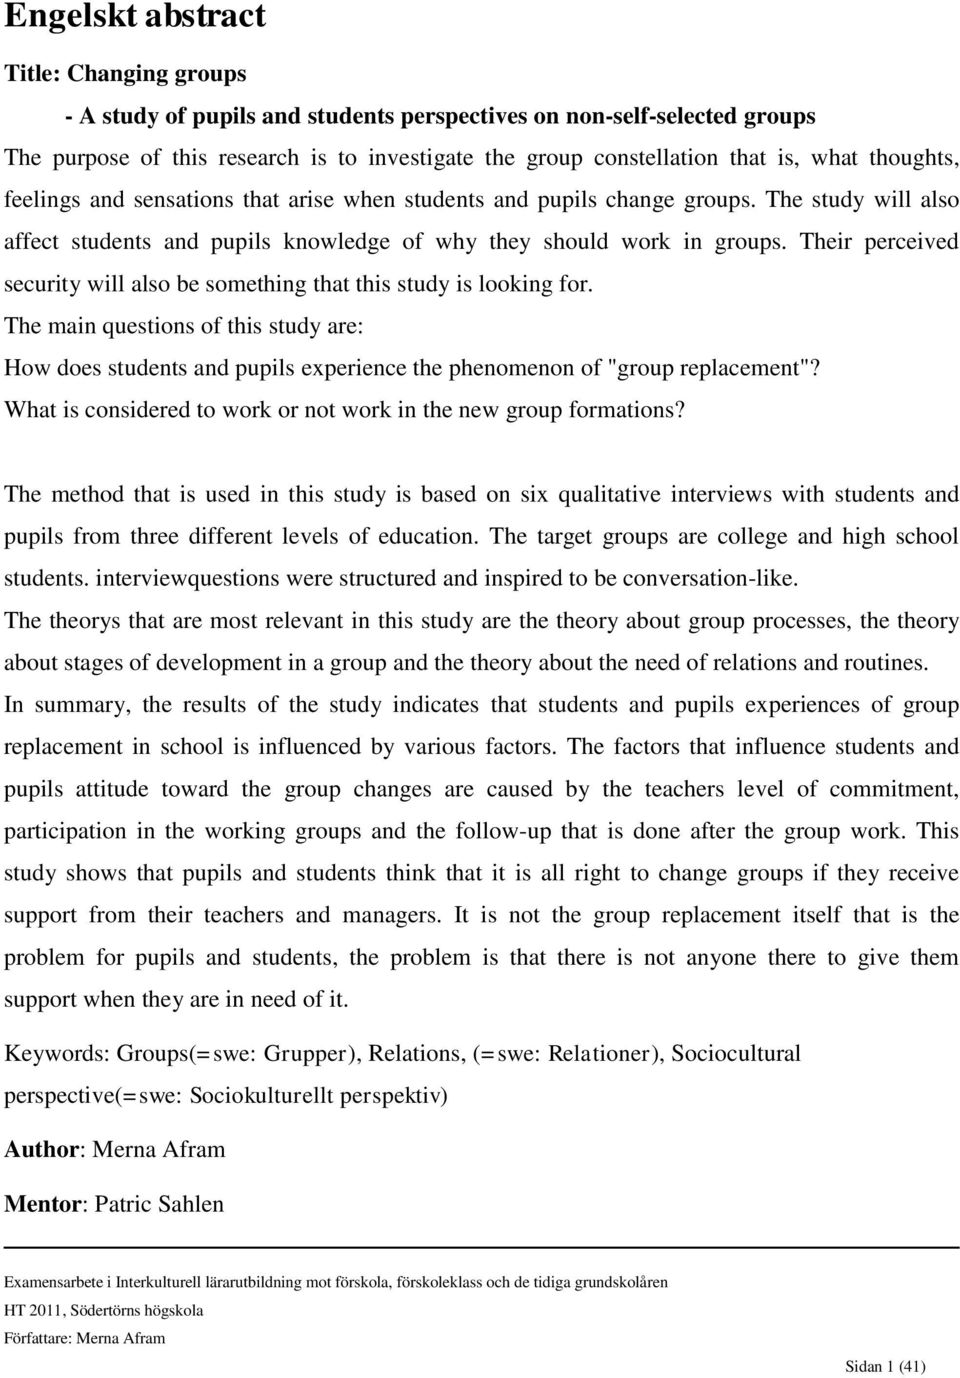 "Their perceived security will also be something that this study is looking for. The main questions of this study are: How does students and pupils experience the phenomenon of ""group replacement""?"